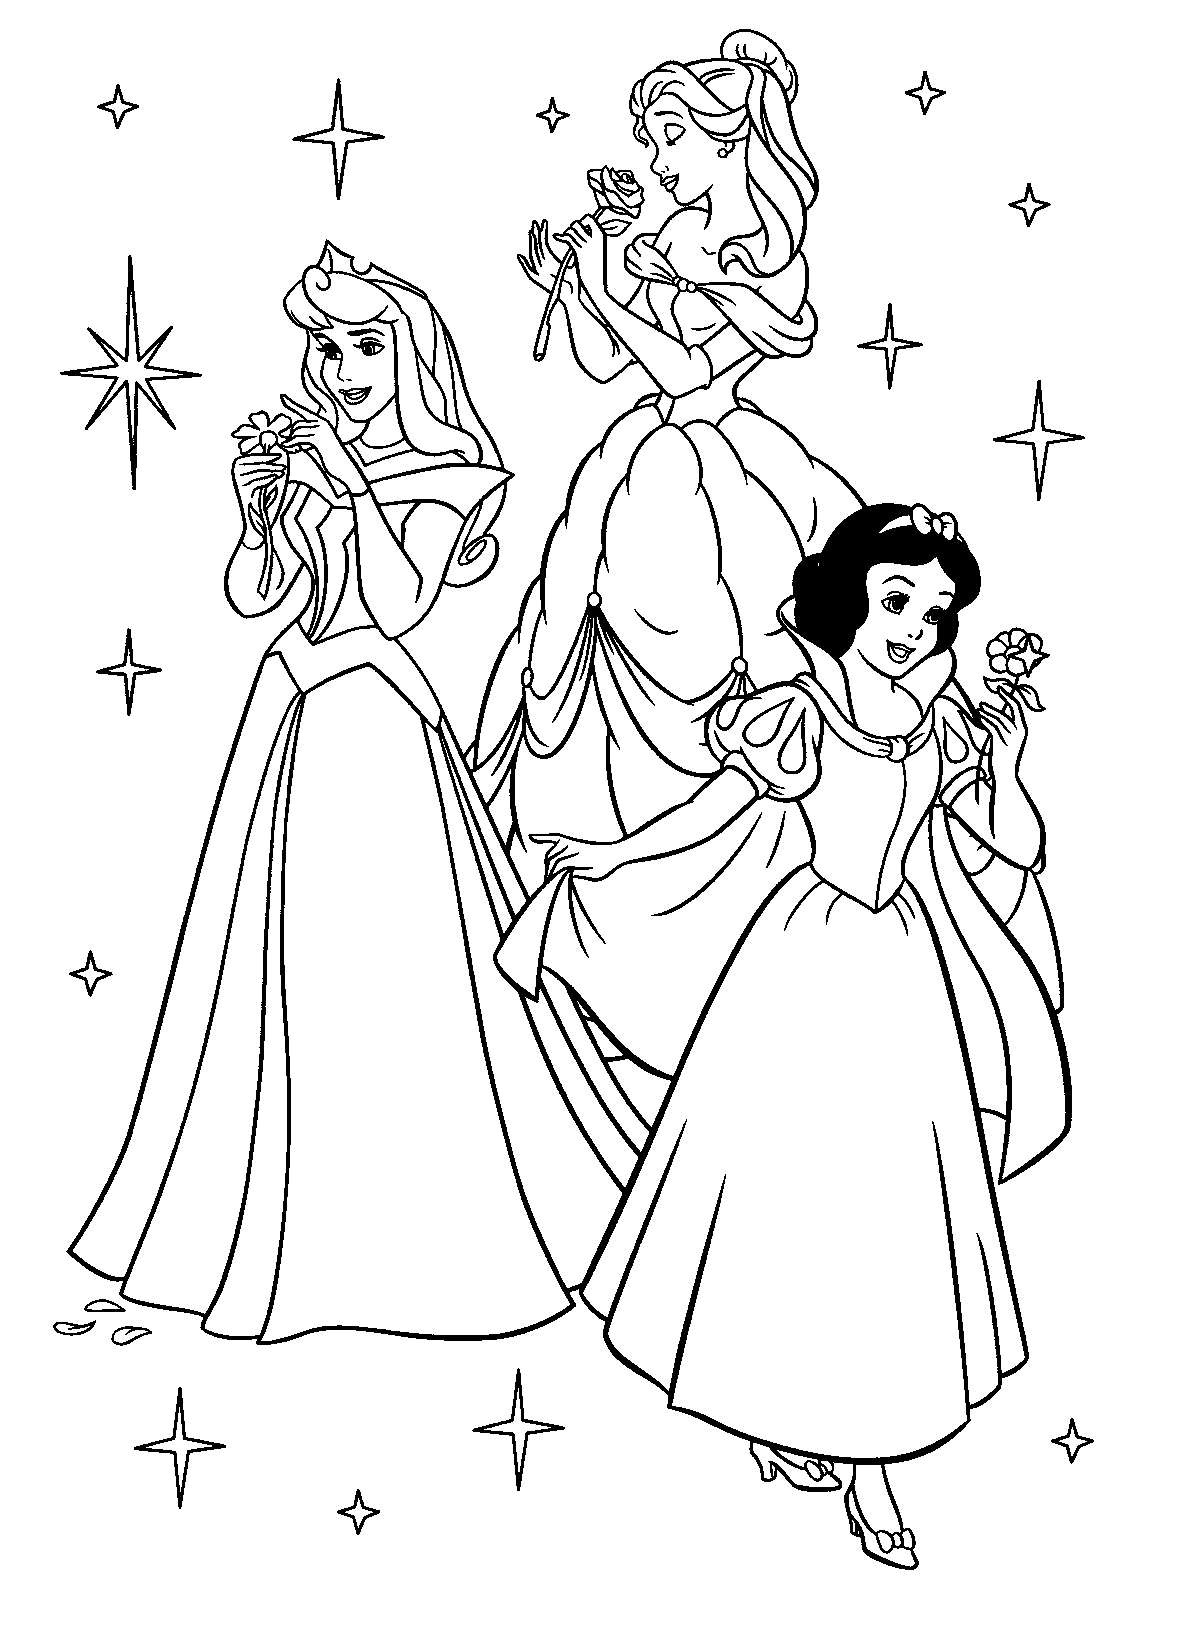 All princess coloring pages - Disney Princess Coloring Pages